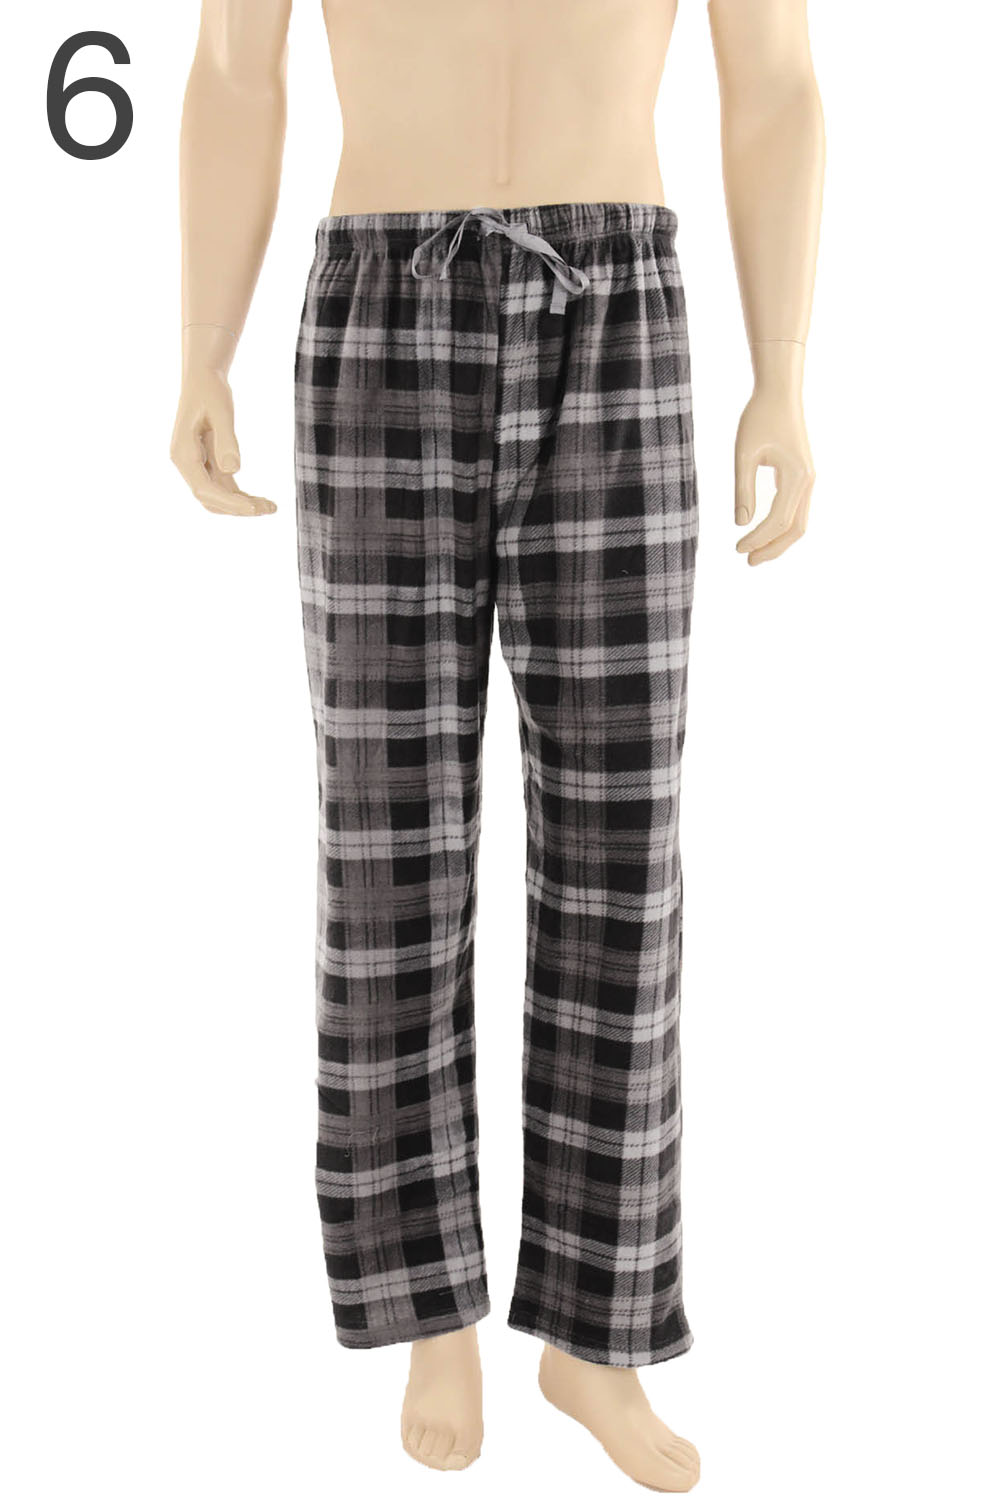 A pair of pajama pants is the perfect compromise between pajama clad and dressed for morning or night. Pajama pants are a wonderful addition to any men's sleepwear collection. Choose from stylish solids in vibrant shades like red, blue, green, orange and yellow, or .